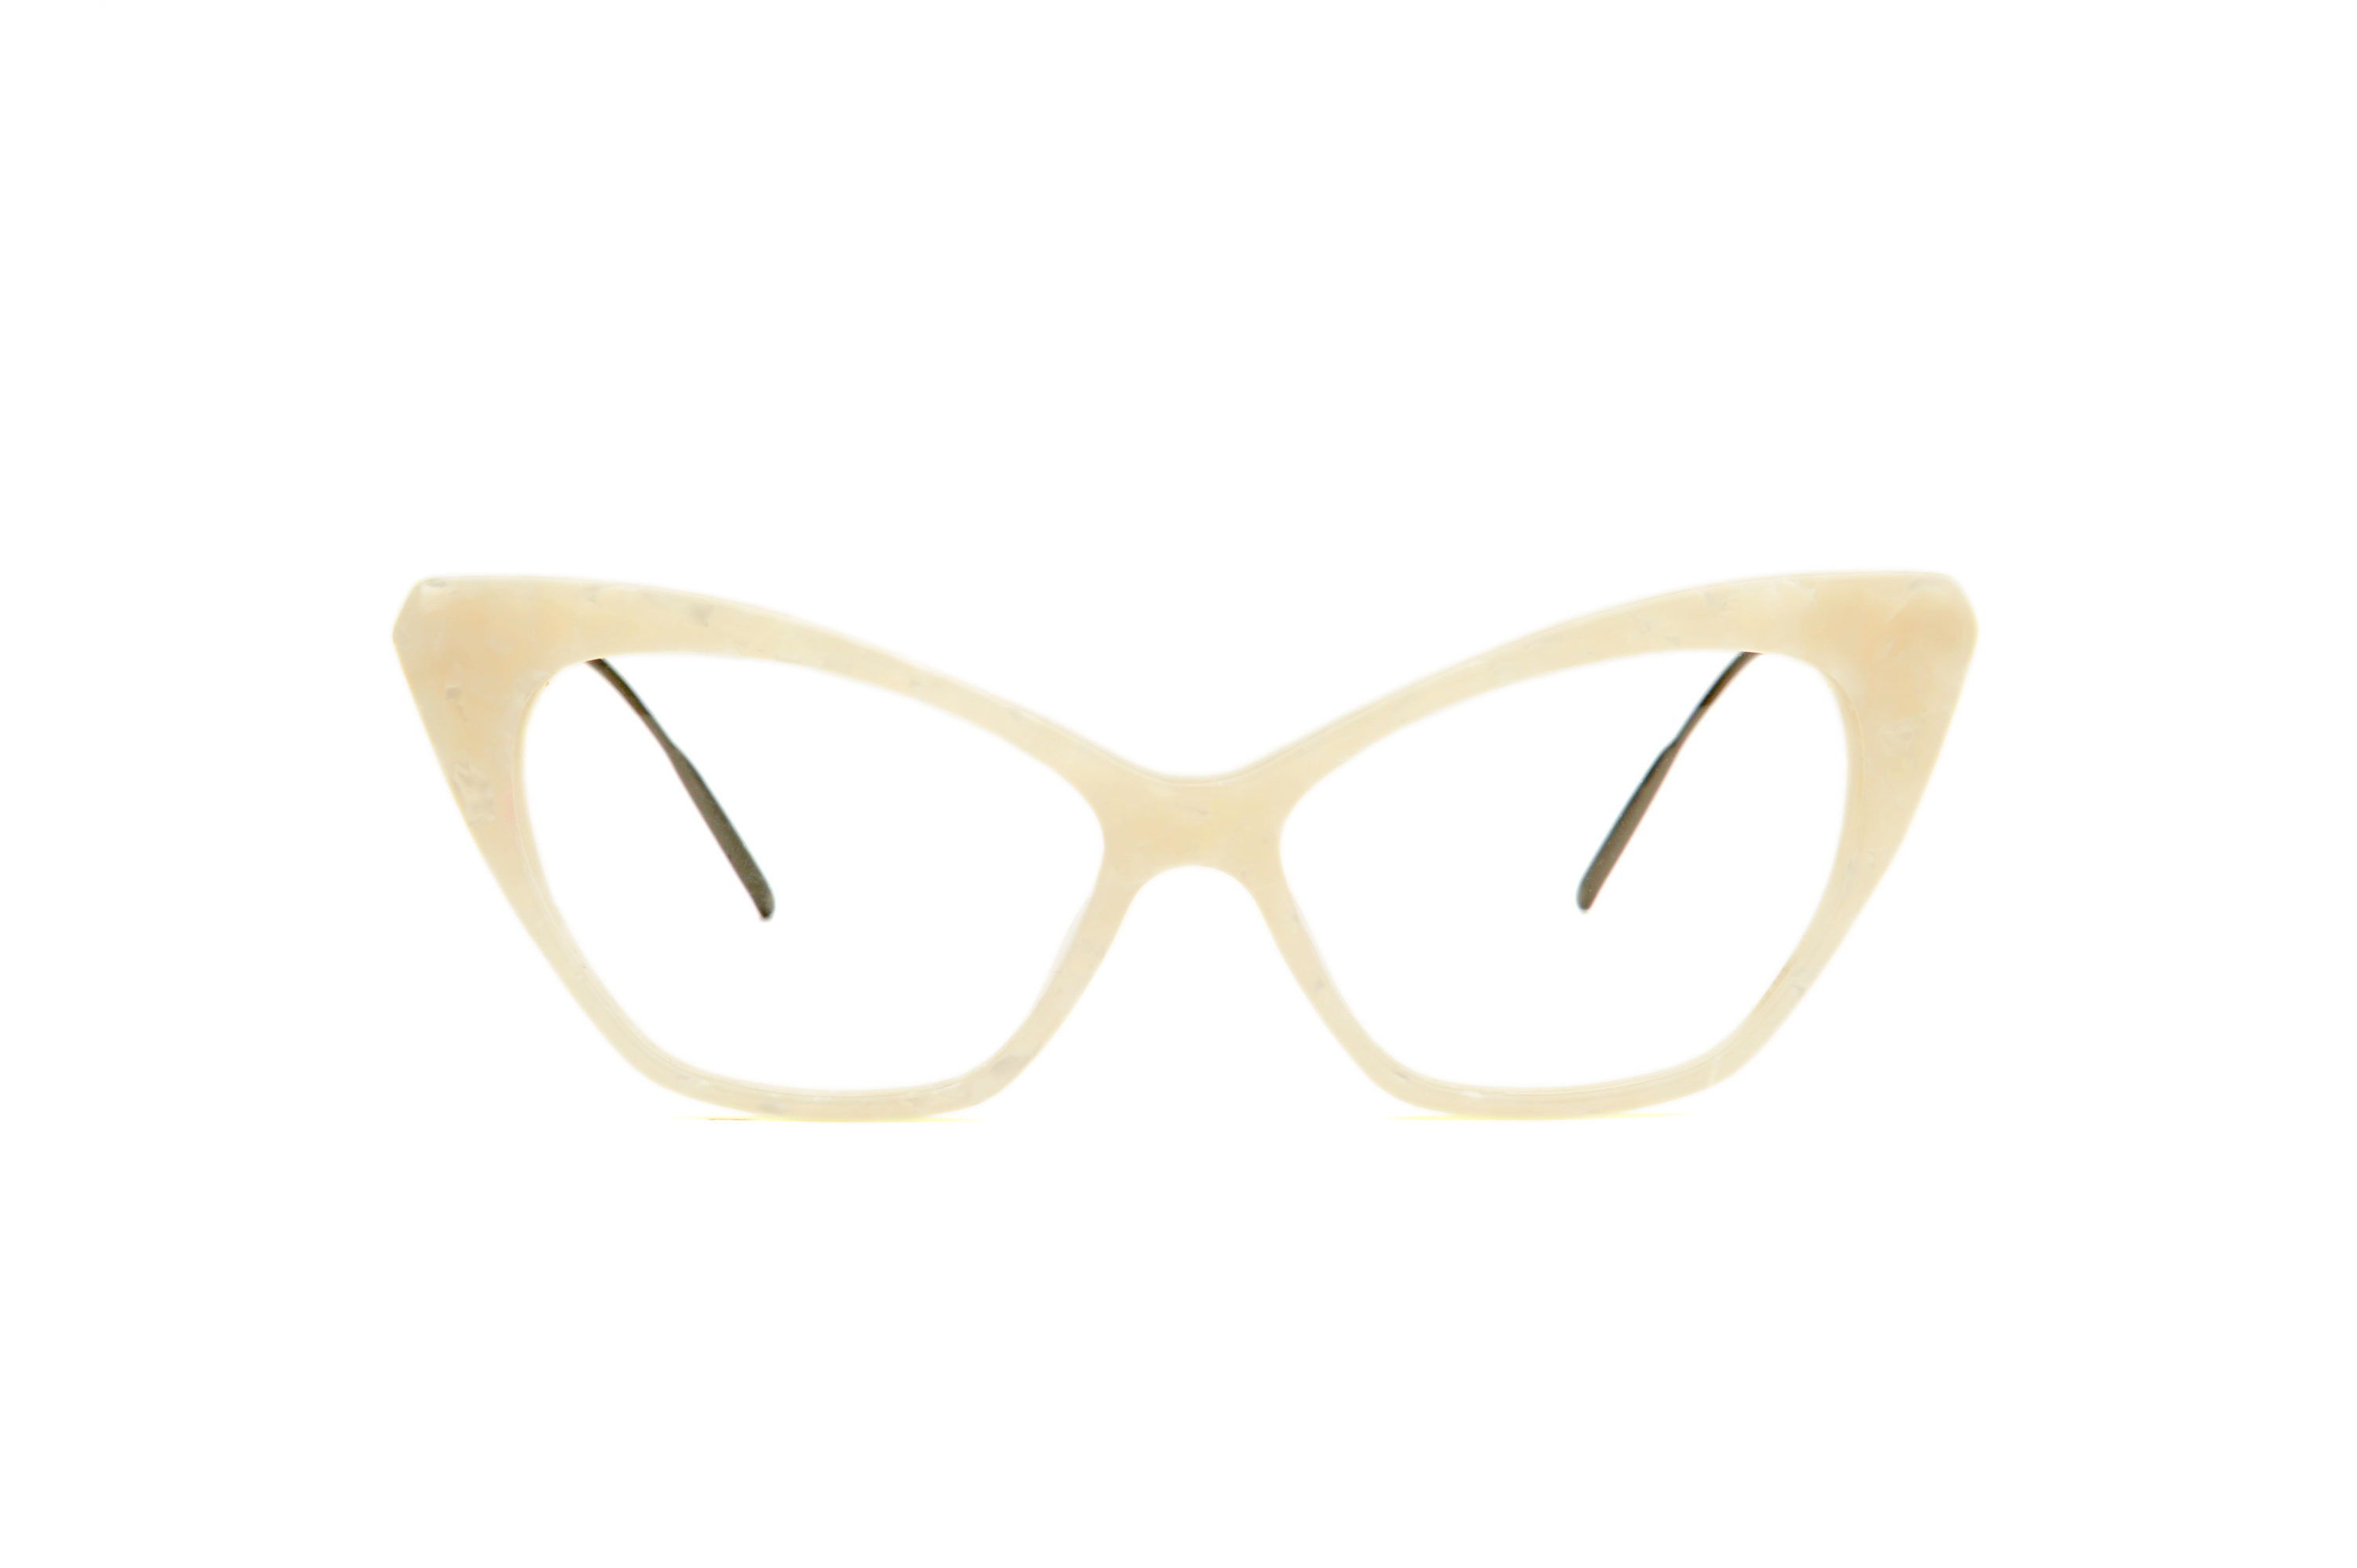 Chloe acetate cat eye white sunglasses by GIGI Studios